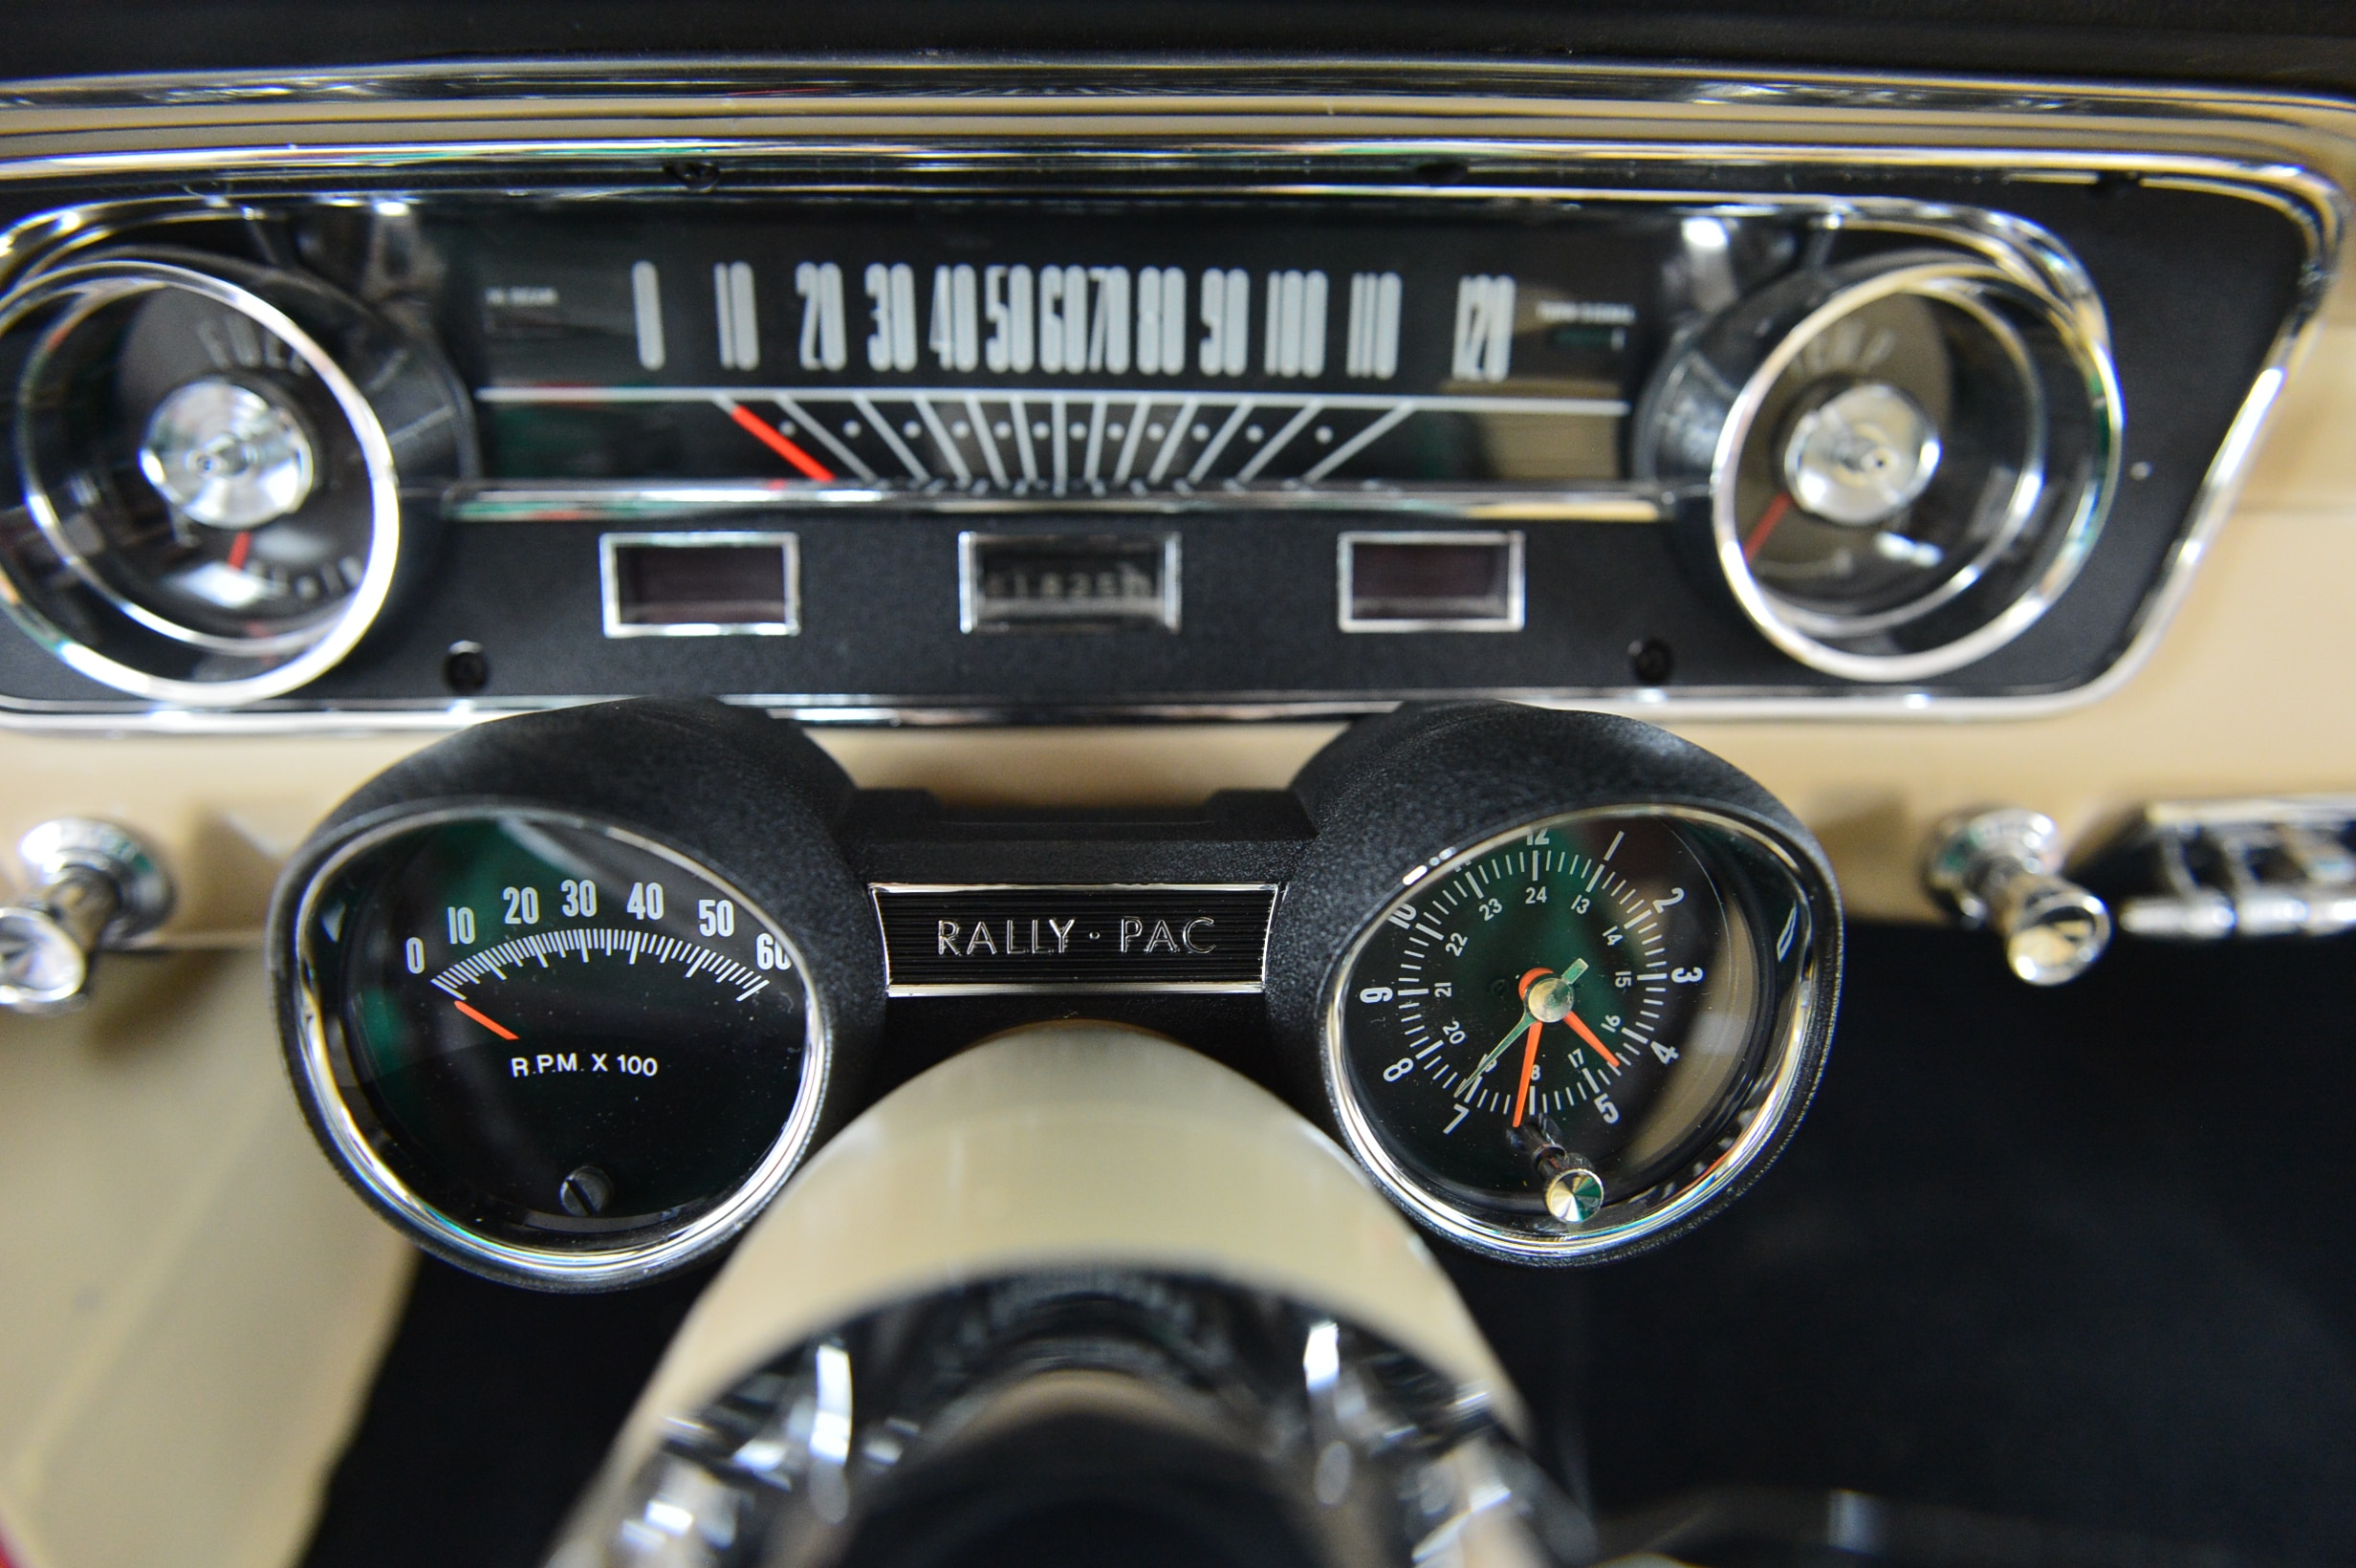 mustang 5 0 tach wiring wiring diagram CJ7 Tach Wiring 0 5 mustang tach wiring wiring diagram library how to add rally pac gauges to a